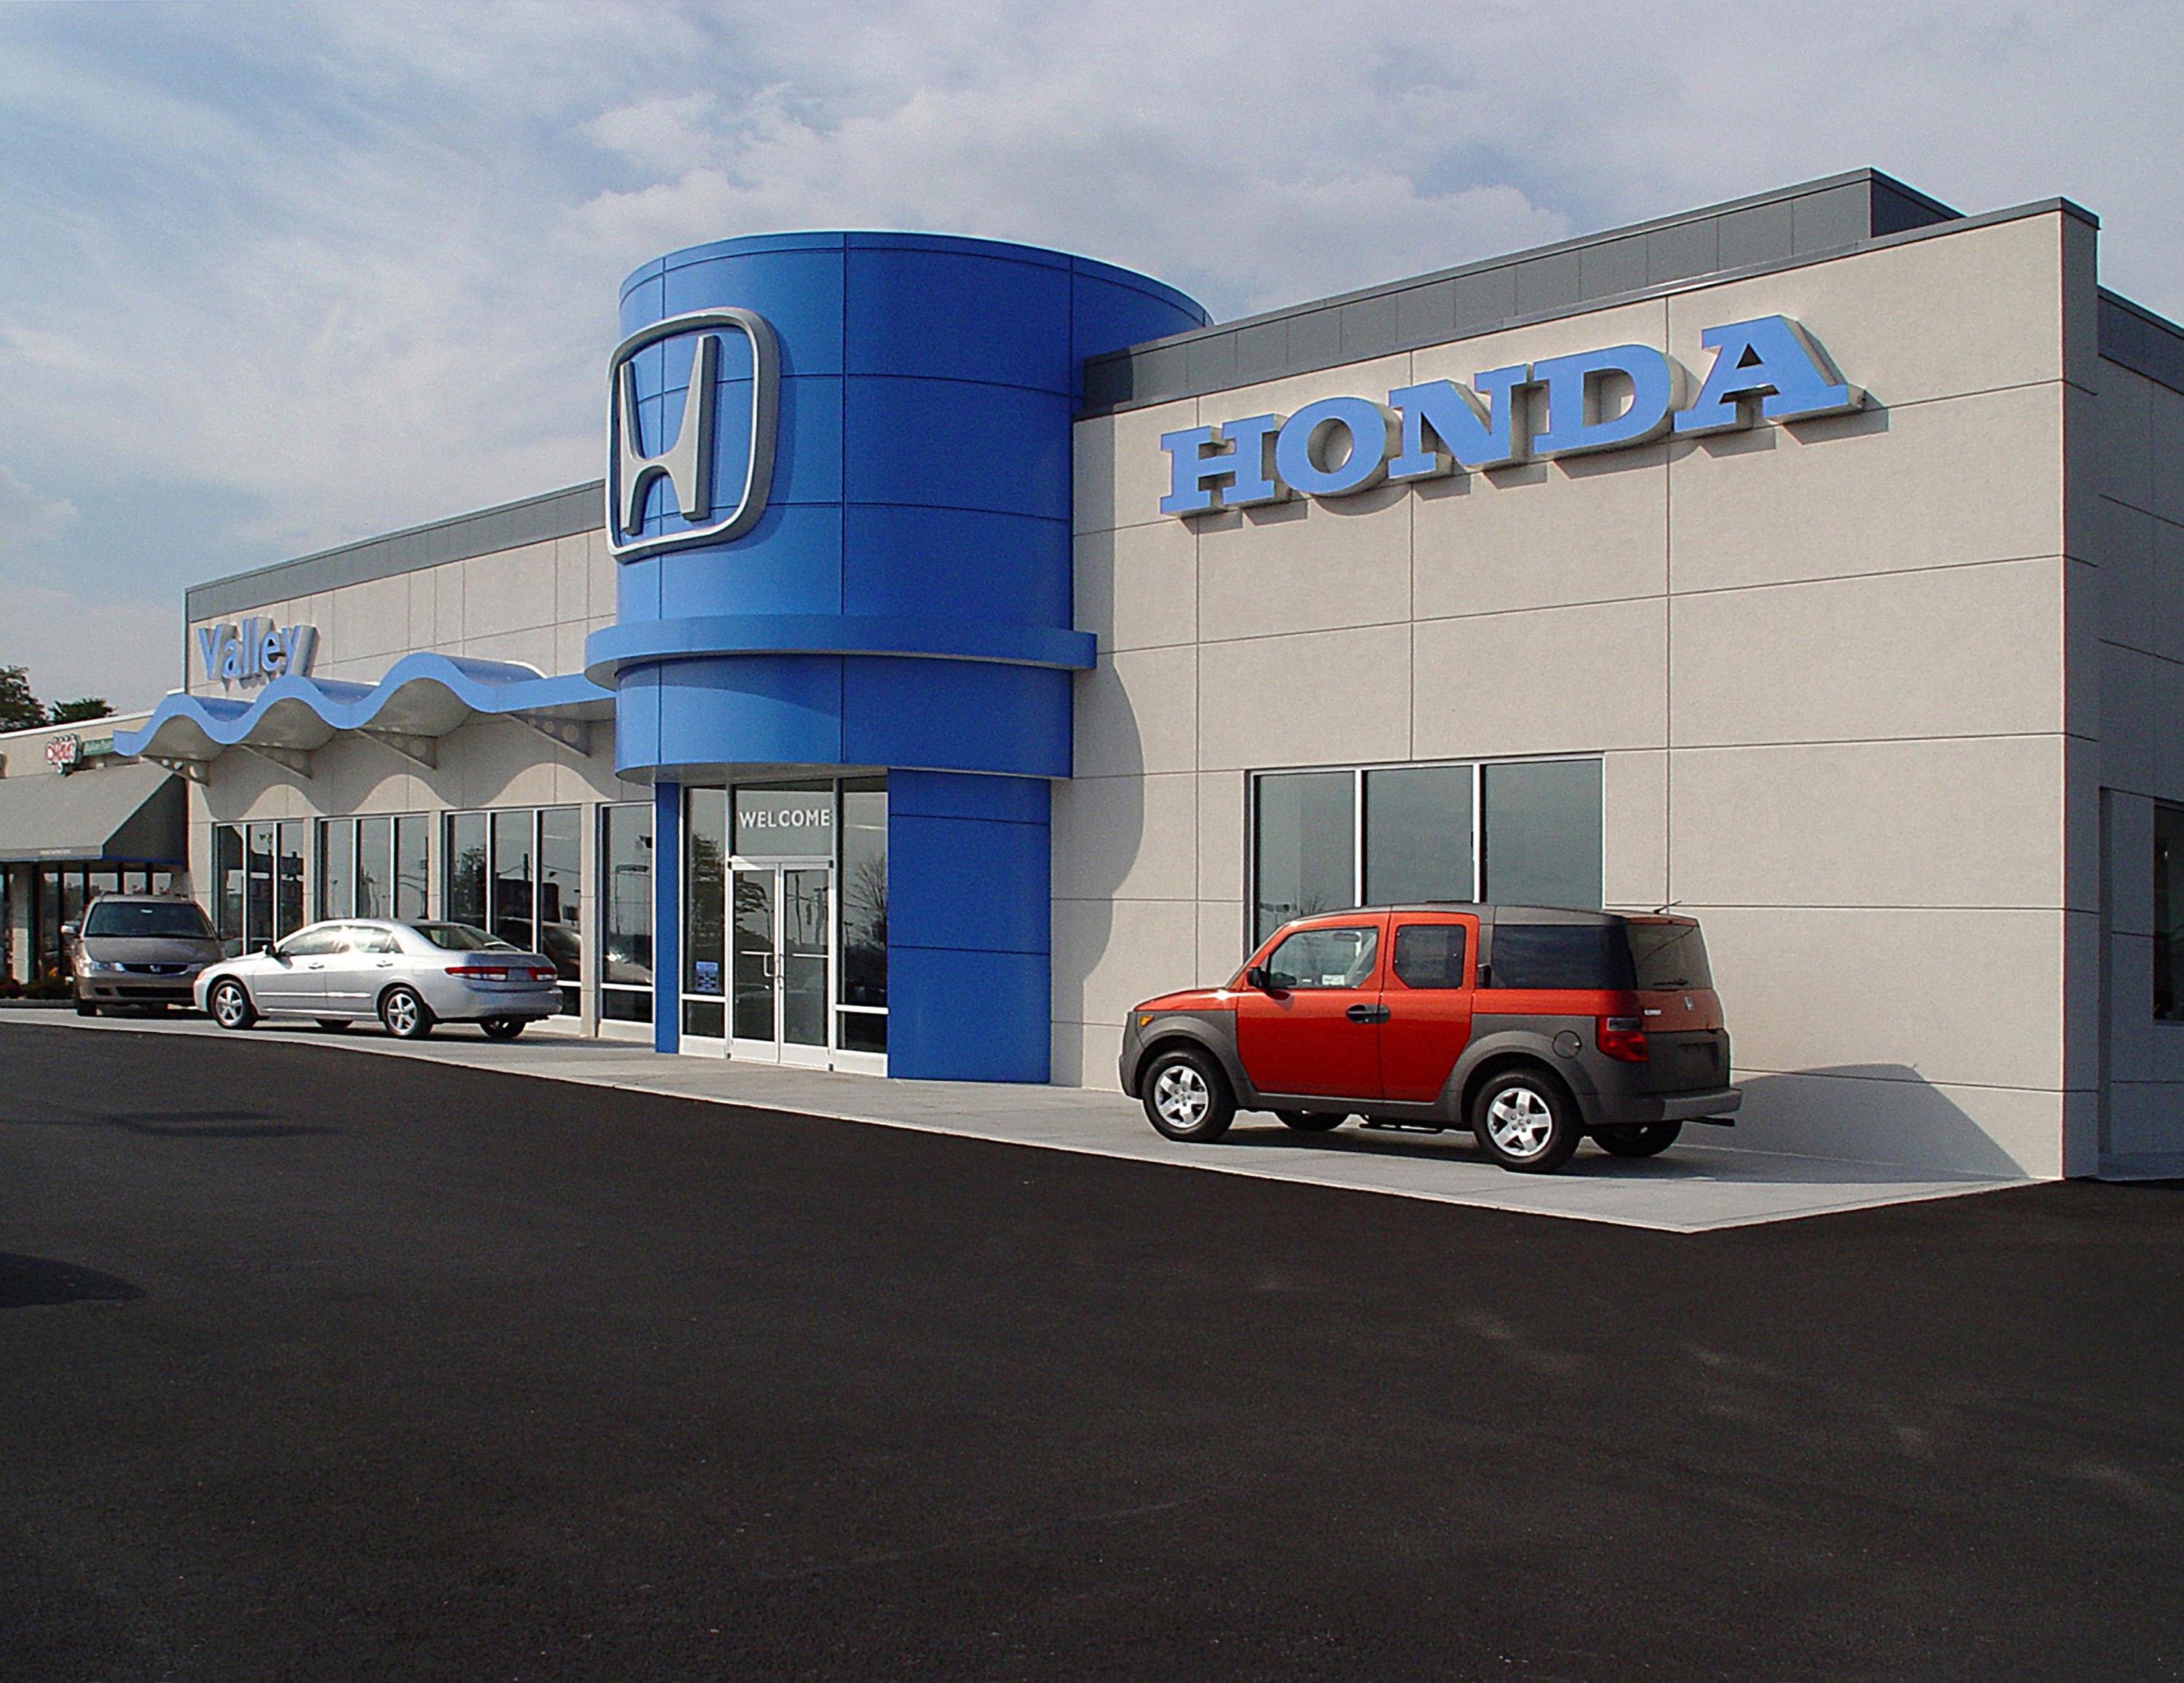 valley honda behlen building systems